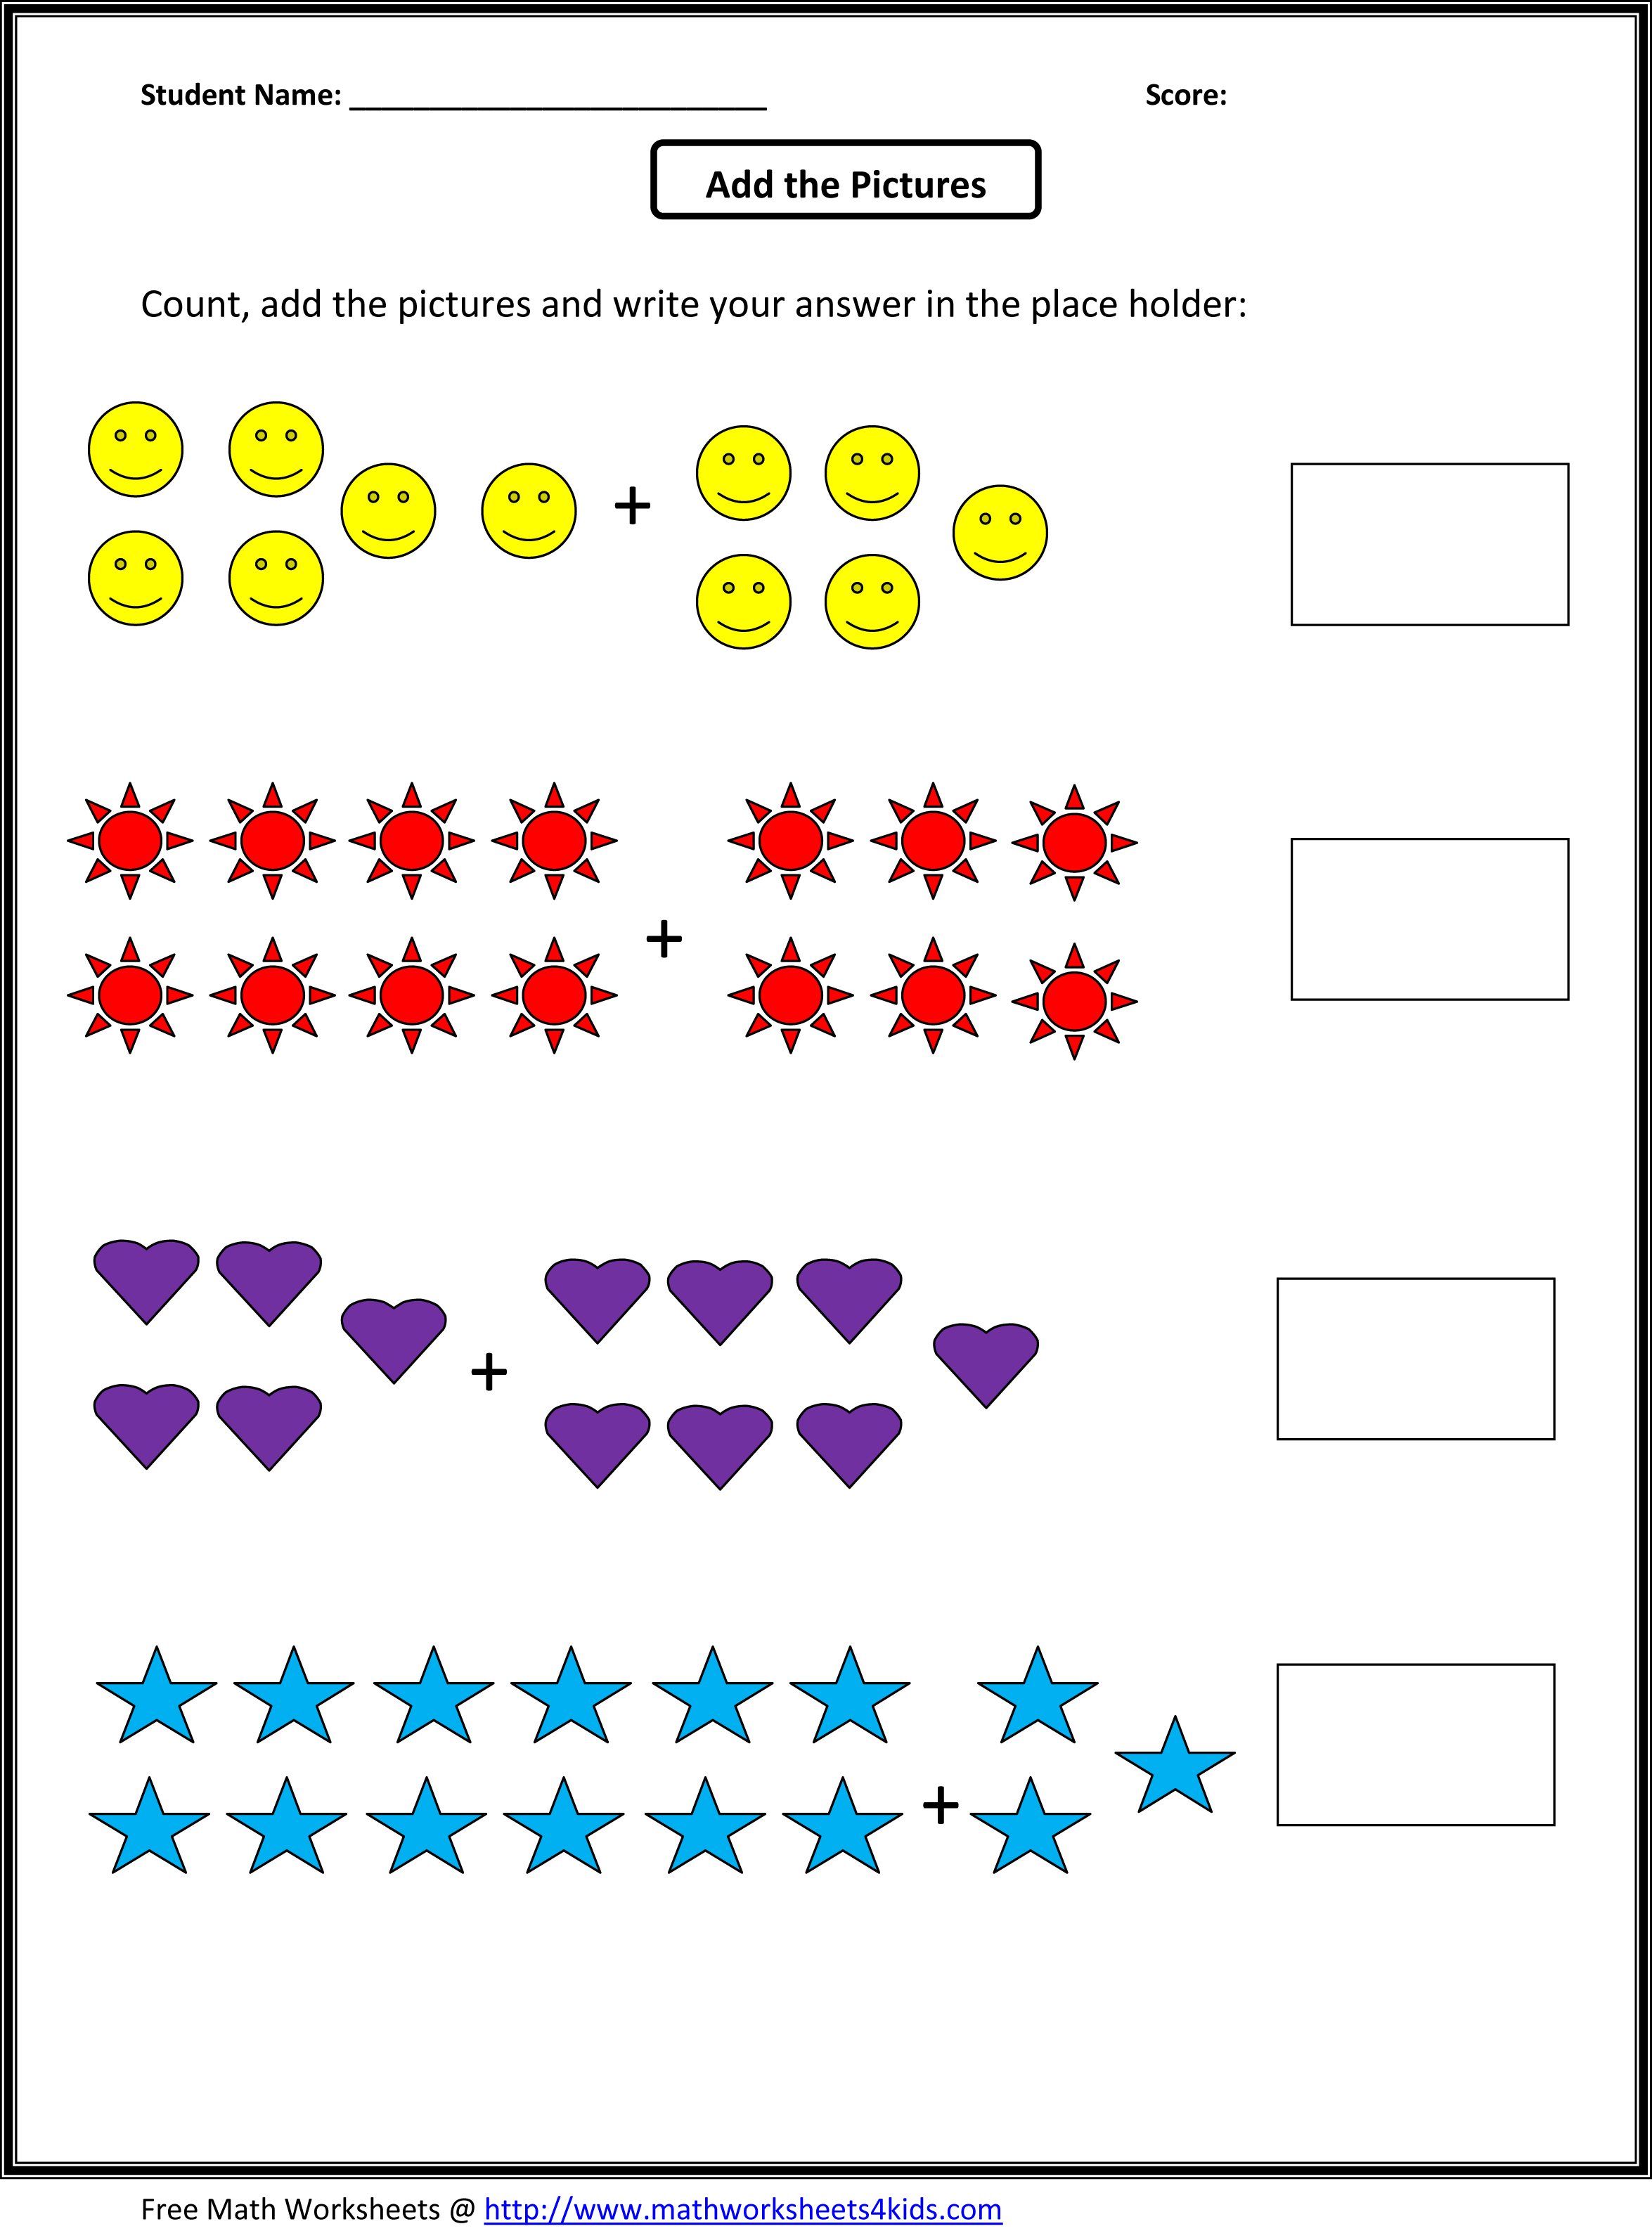 Weirdmailus  Unique Grade  Maths Worksheet  Reocurent With Fair Math Worksheets For St Grade Free  Reocurent With Amazing Spanish Numbers   Worksheet Also Trigonometry Proofs Worksheets In Addition Subtracting Decimals Word Problems Worksheet And Super Teacher Worksheets Adding Fractions As Well As Piano Theory Worksheets For Beginners Additionally Spiderman Worksheets Free Printables From Reocurentcom With Weirdmailus  Fair Grade  Maths Worksheet  Reocurent With Amazing Math Worksheets For St Grade Free  Reocurent And Unique Spanish Numbers   Worksheet Also Trigonometry Proofs Worksheets In Addition Subtracting Decimals Word Problems Worksheet From Reocurentcom